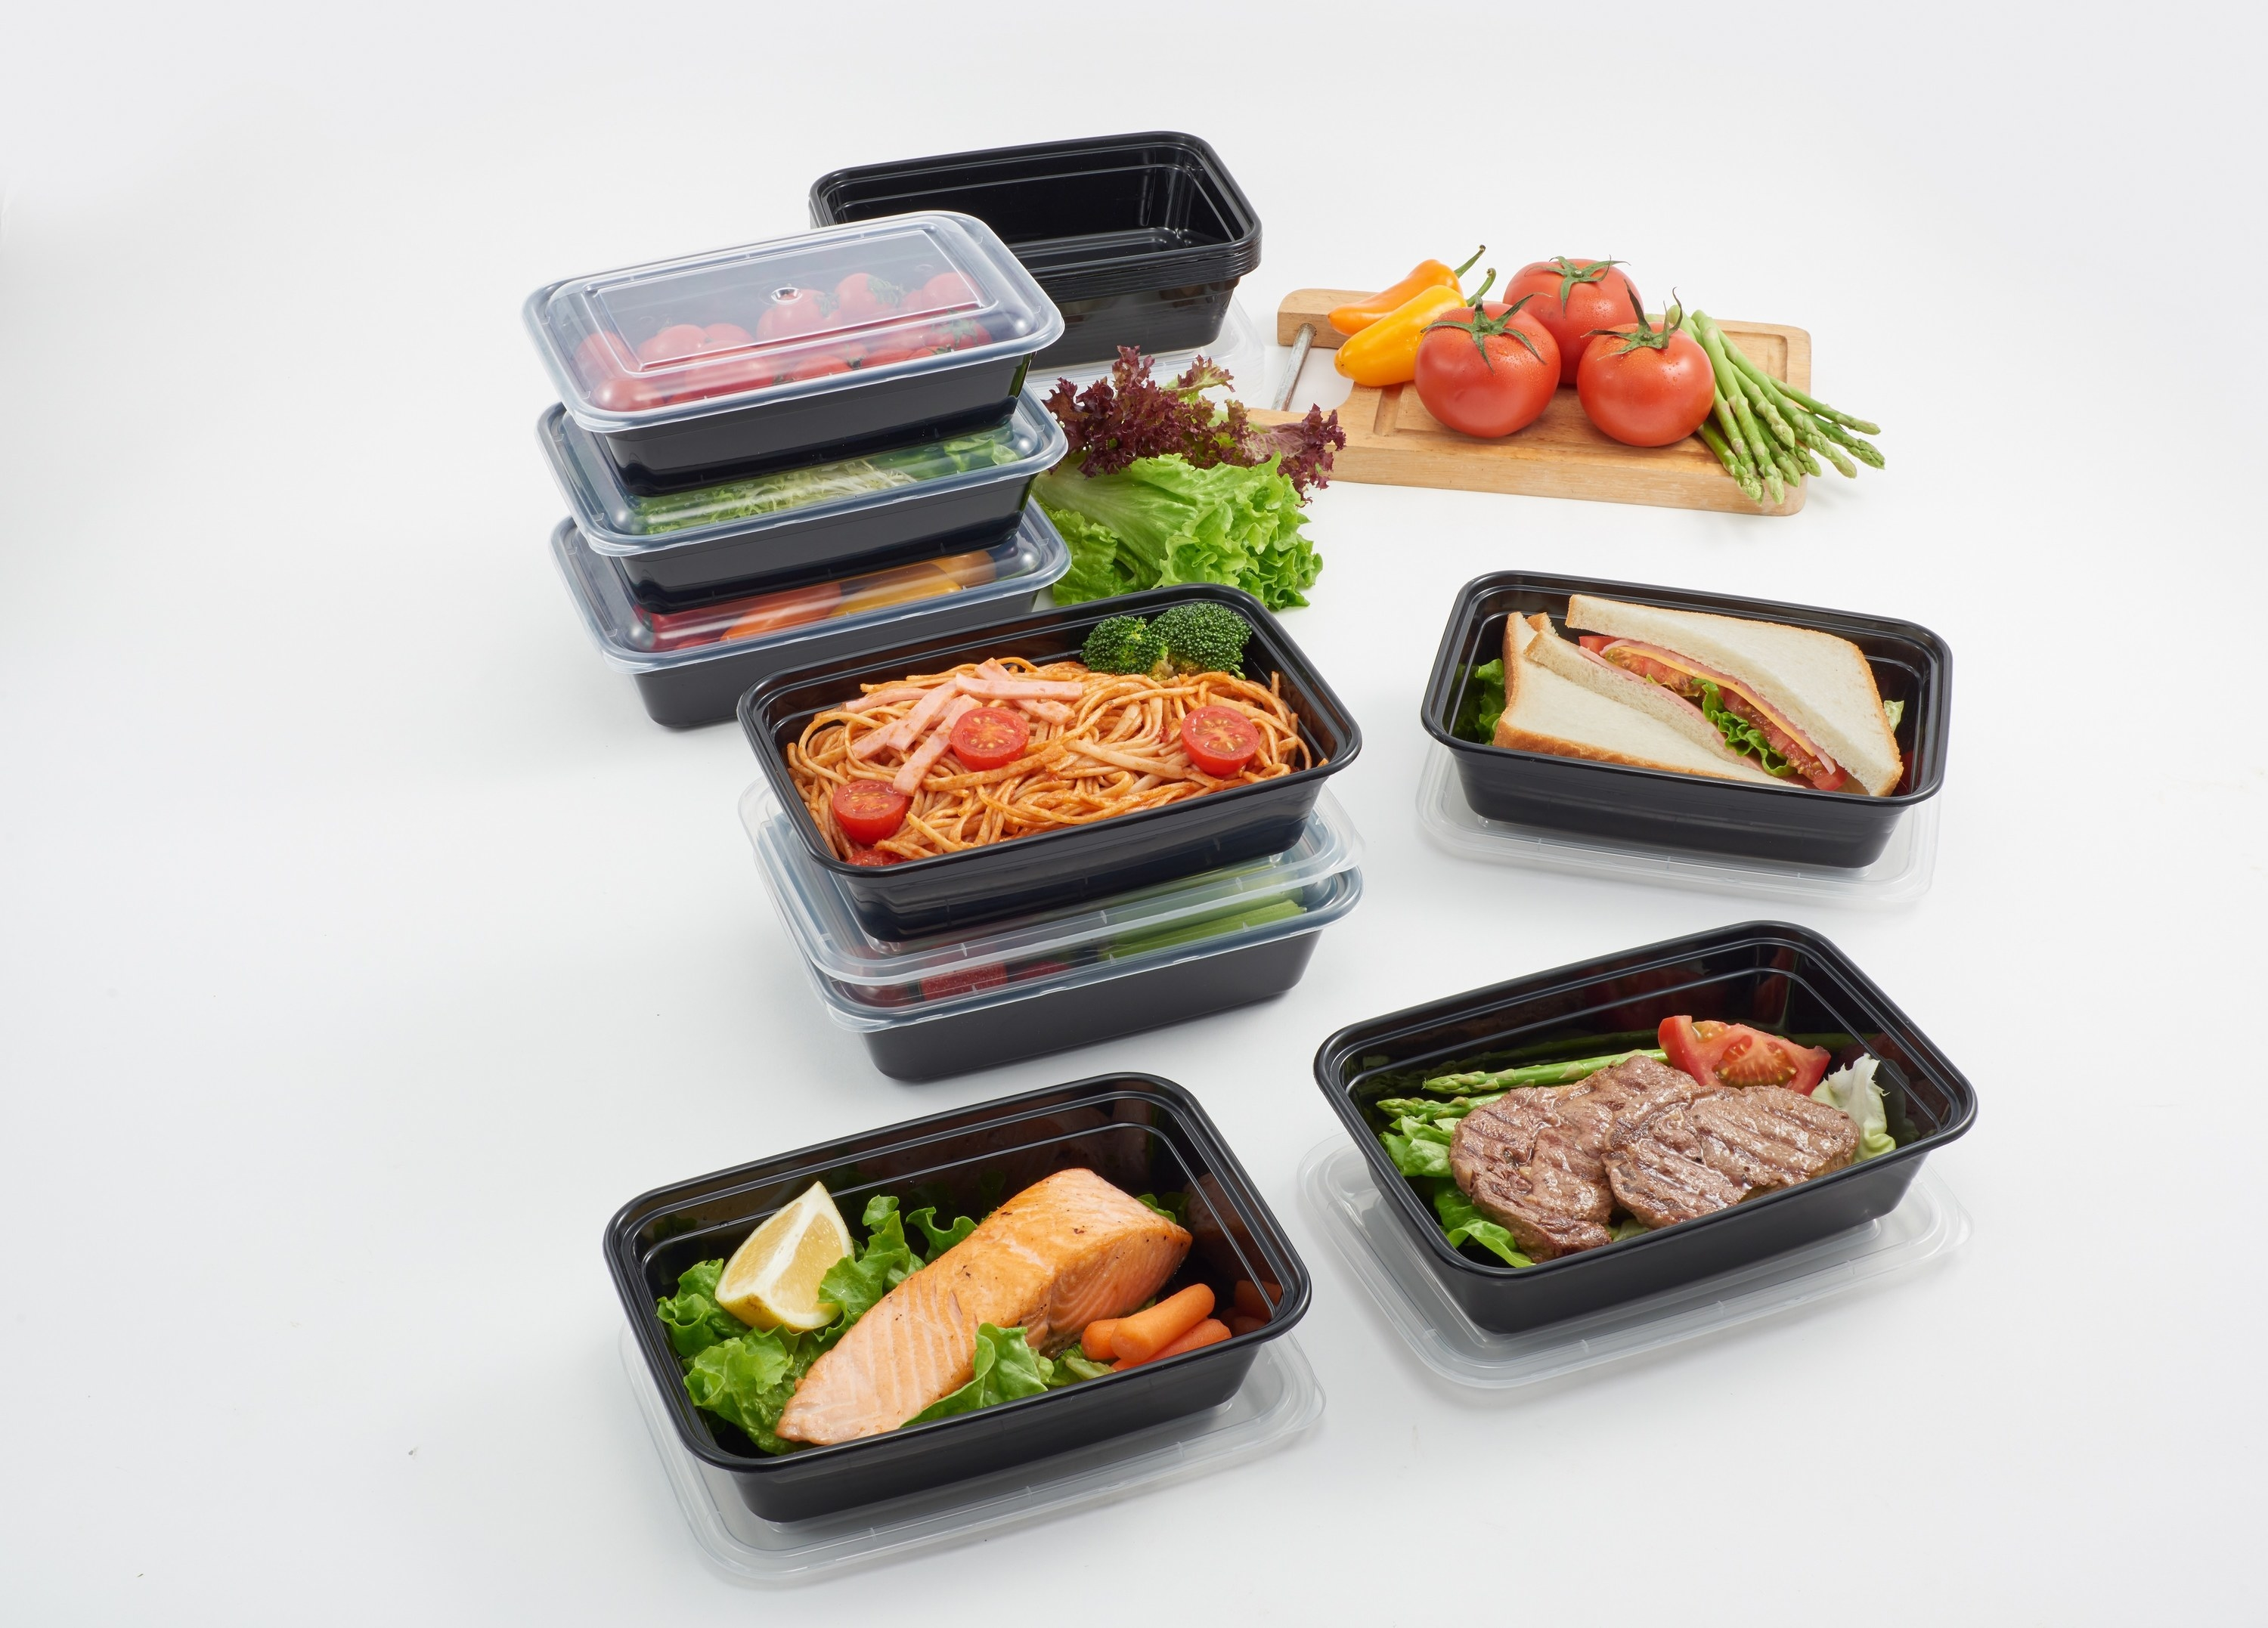 black meal prep containers holding spaghetti, salmon, beef, sandwiches etc